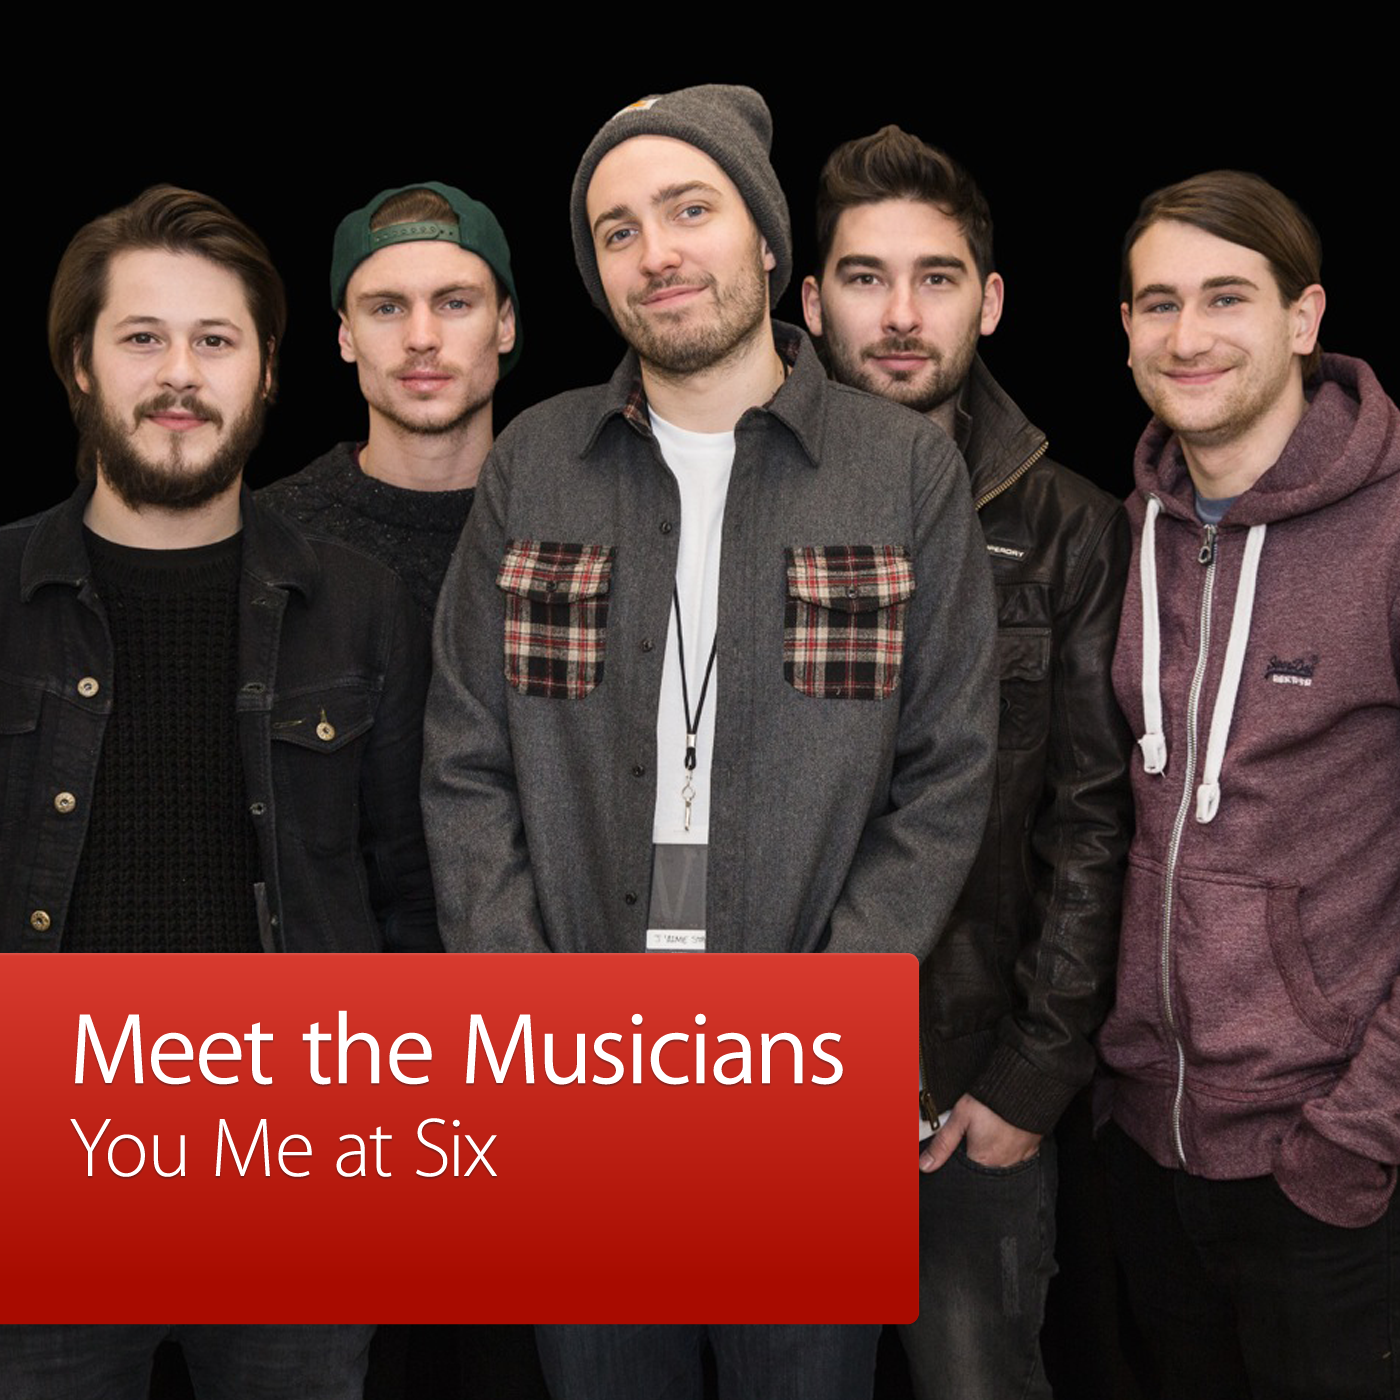 You Me At Six: Meet the Musician